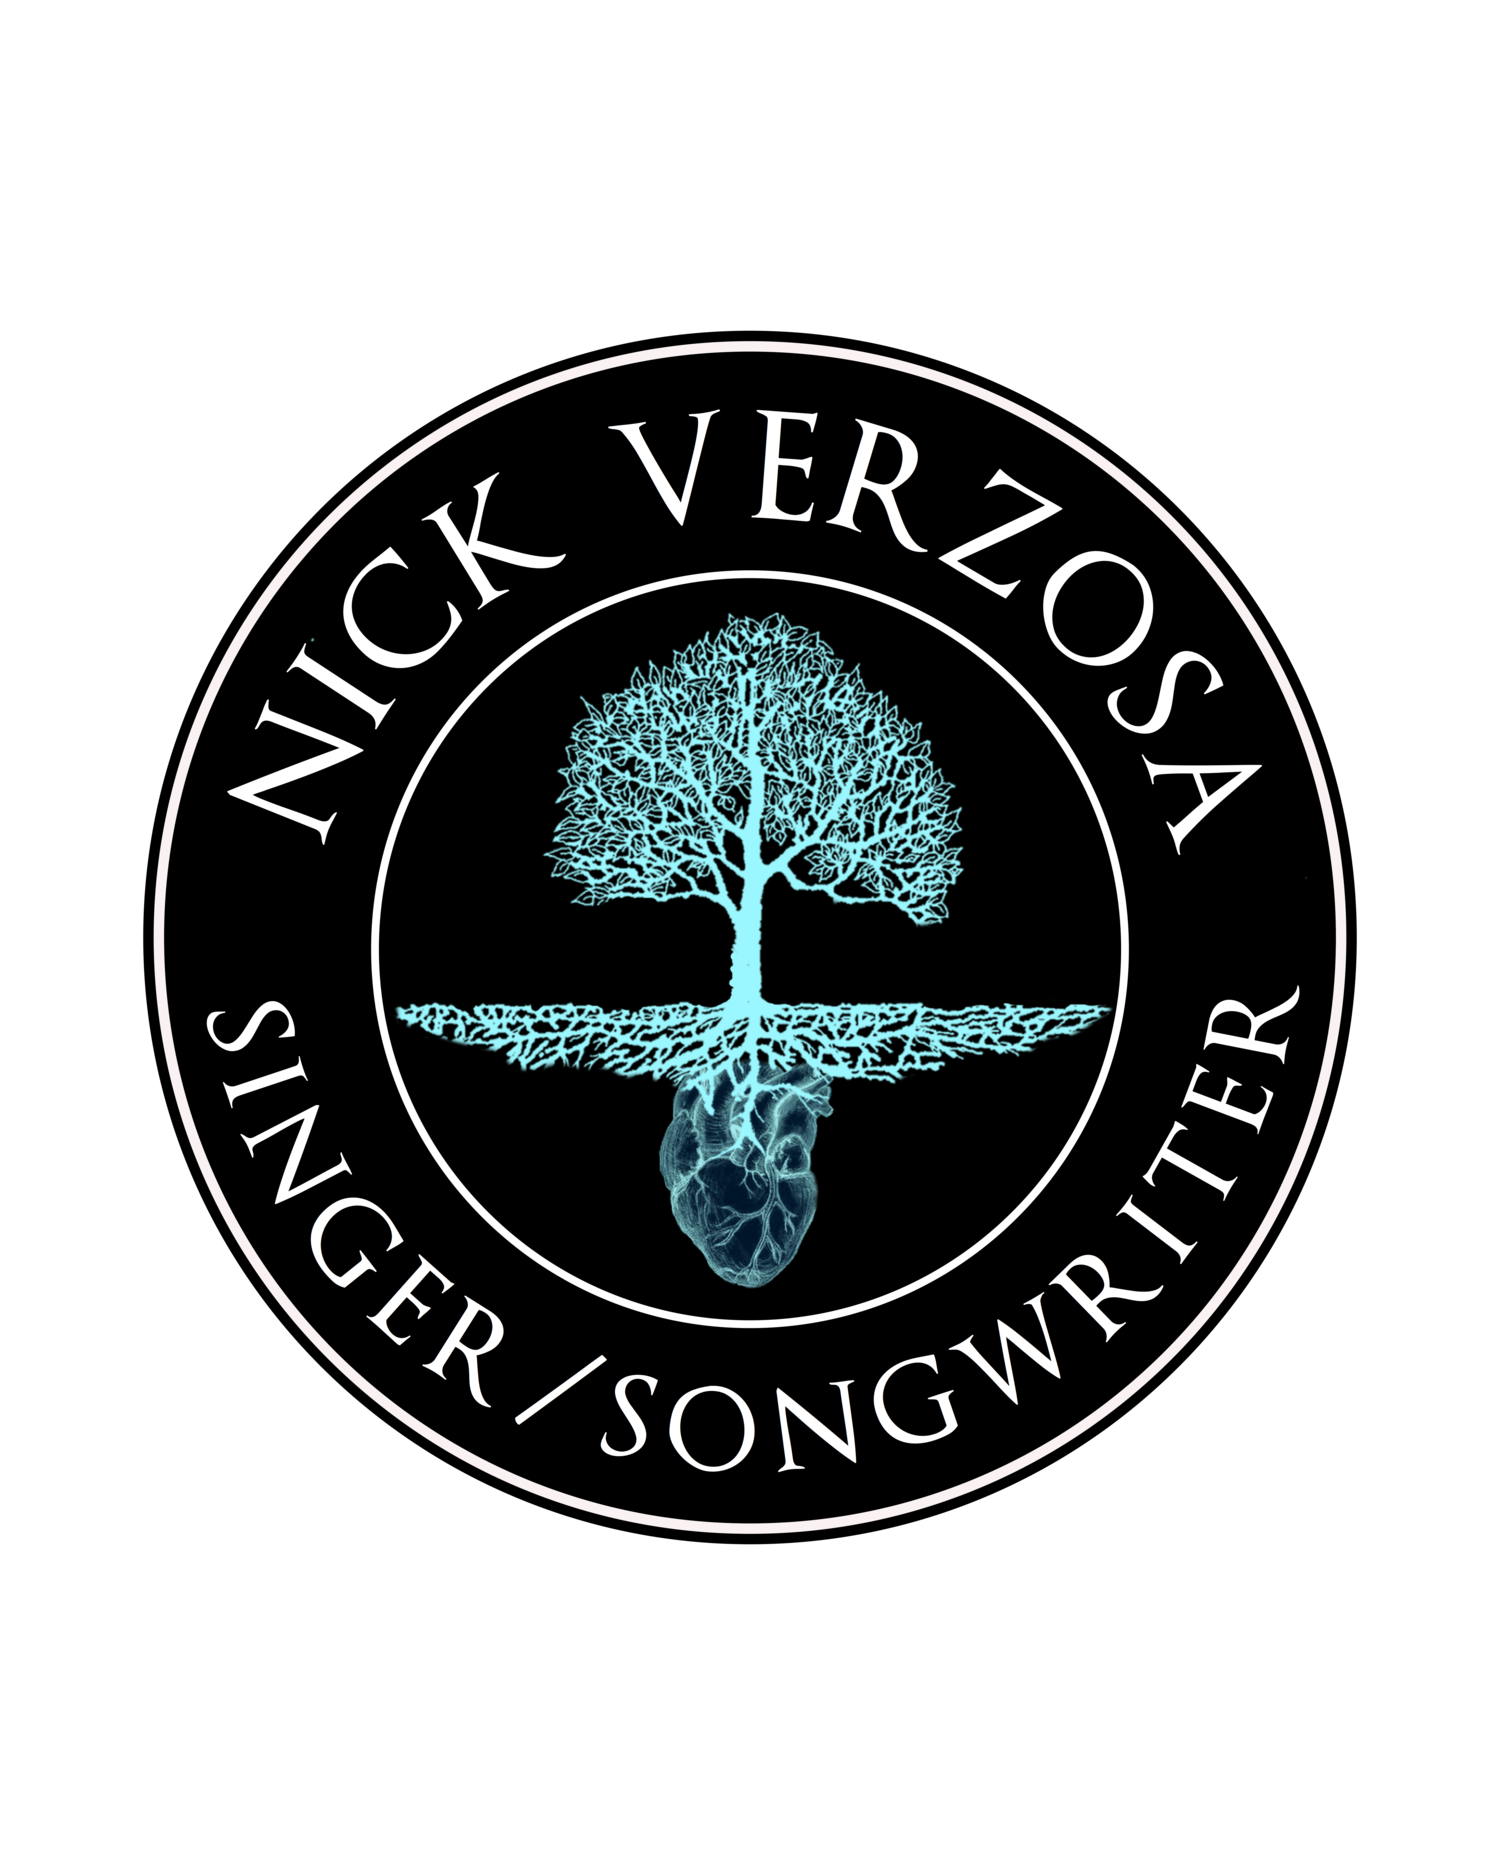 Nick Verzosa and the Noble Union